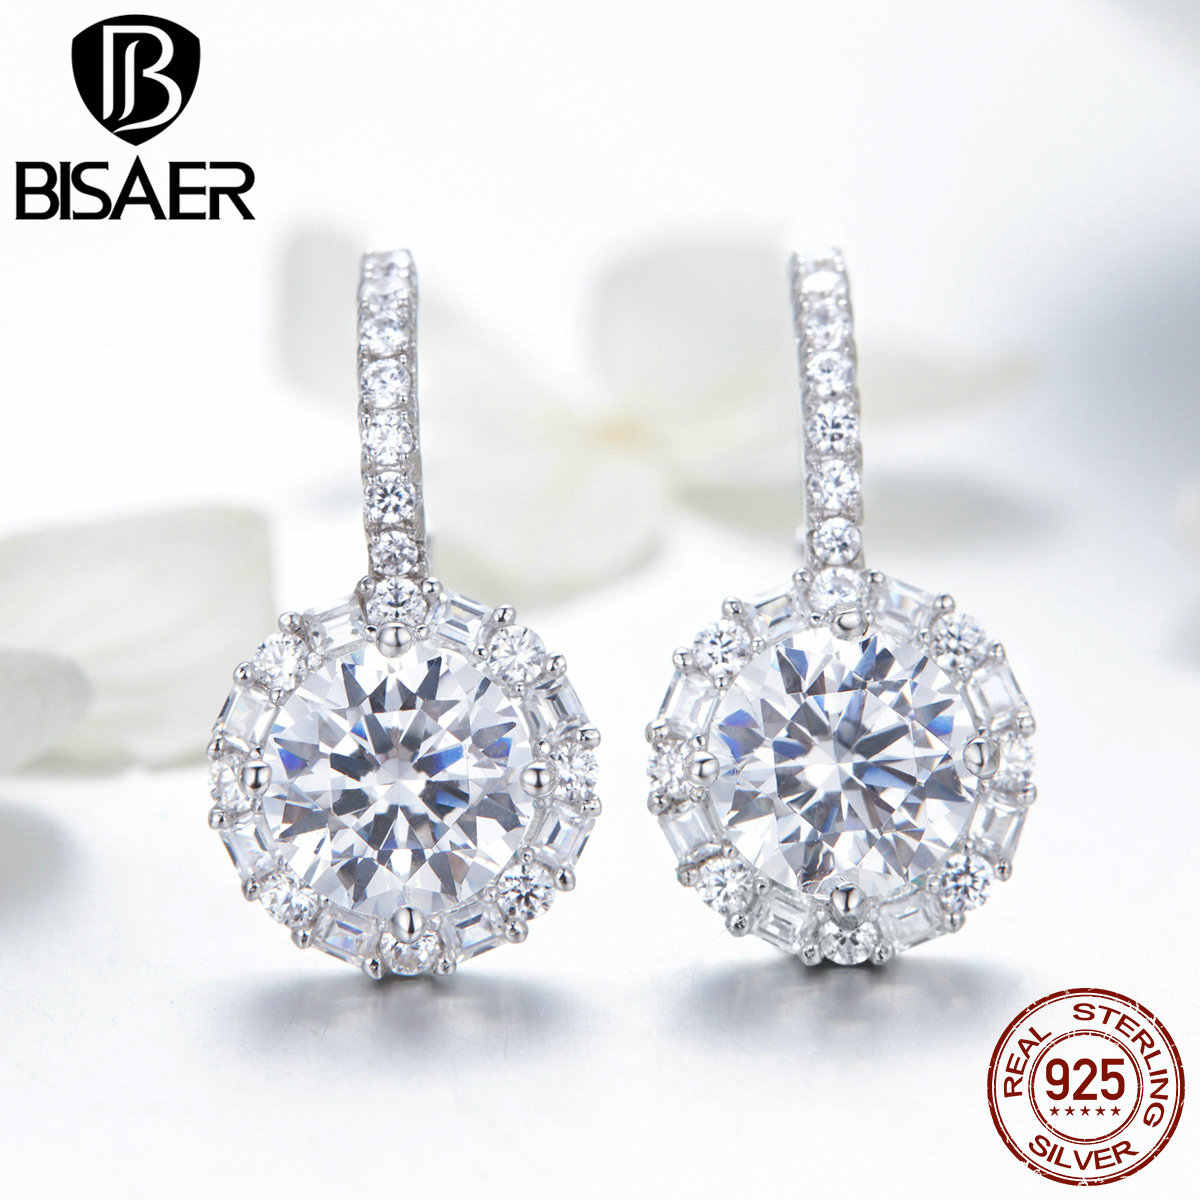 BISAER Classic 925 Sterling Silver Round Zircon Earrings Simple Circle CZ Stud Earrings for Women Wedding Jewelry ECE508